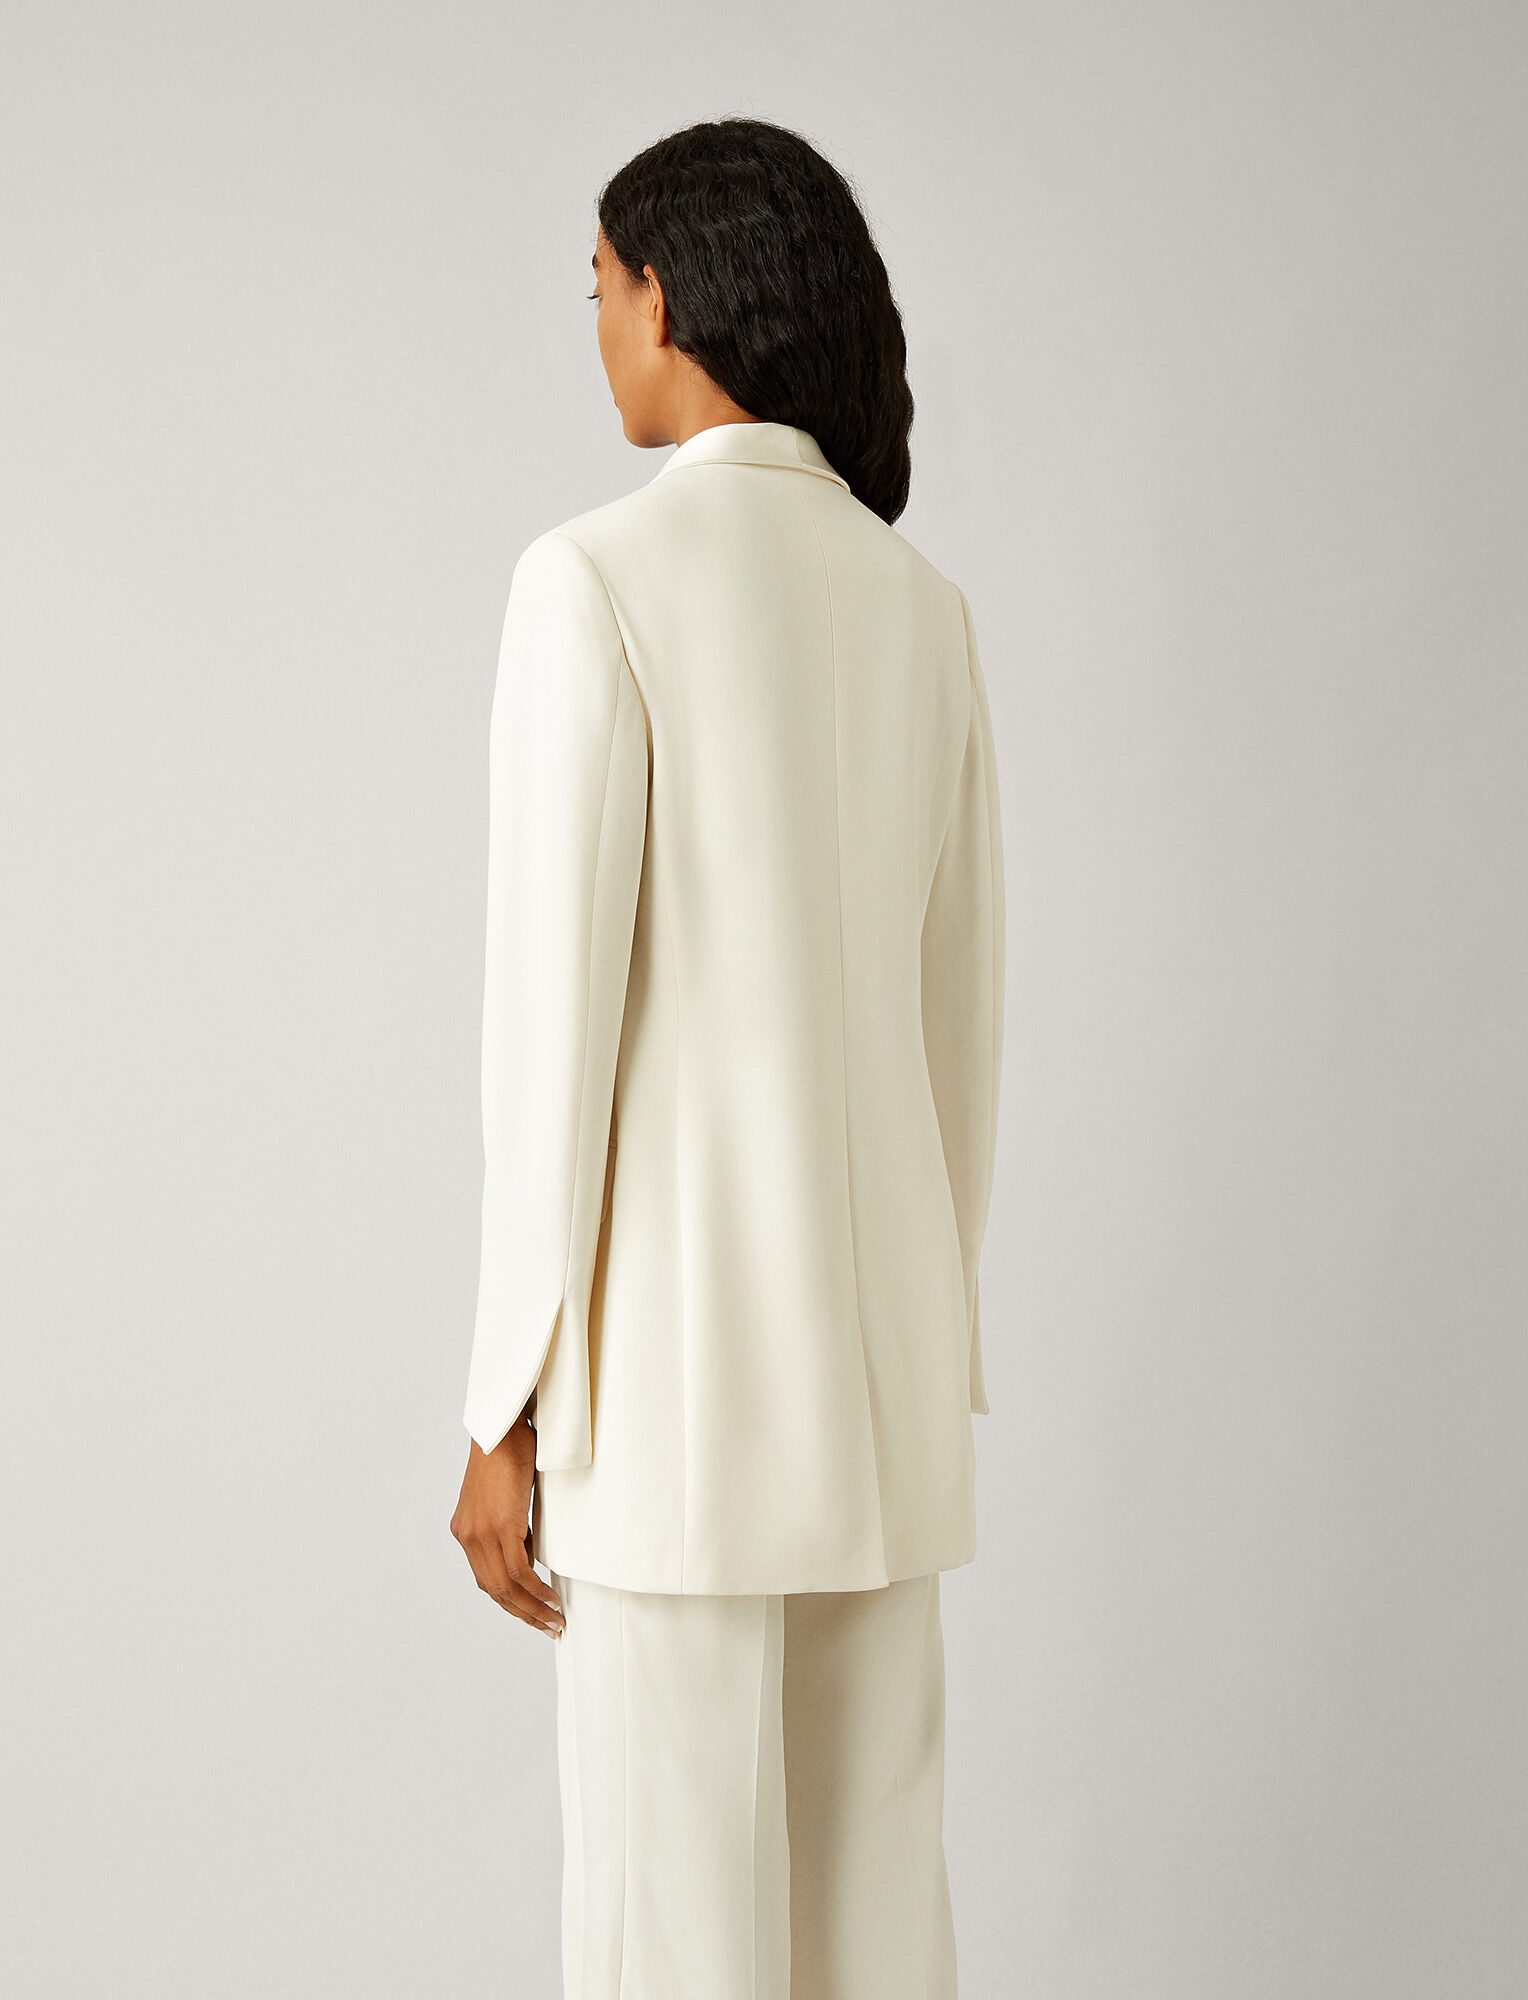 Joseph, Clapton Stretch Cady Jacket, in IVORY